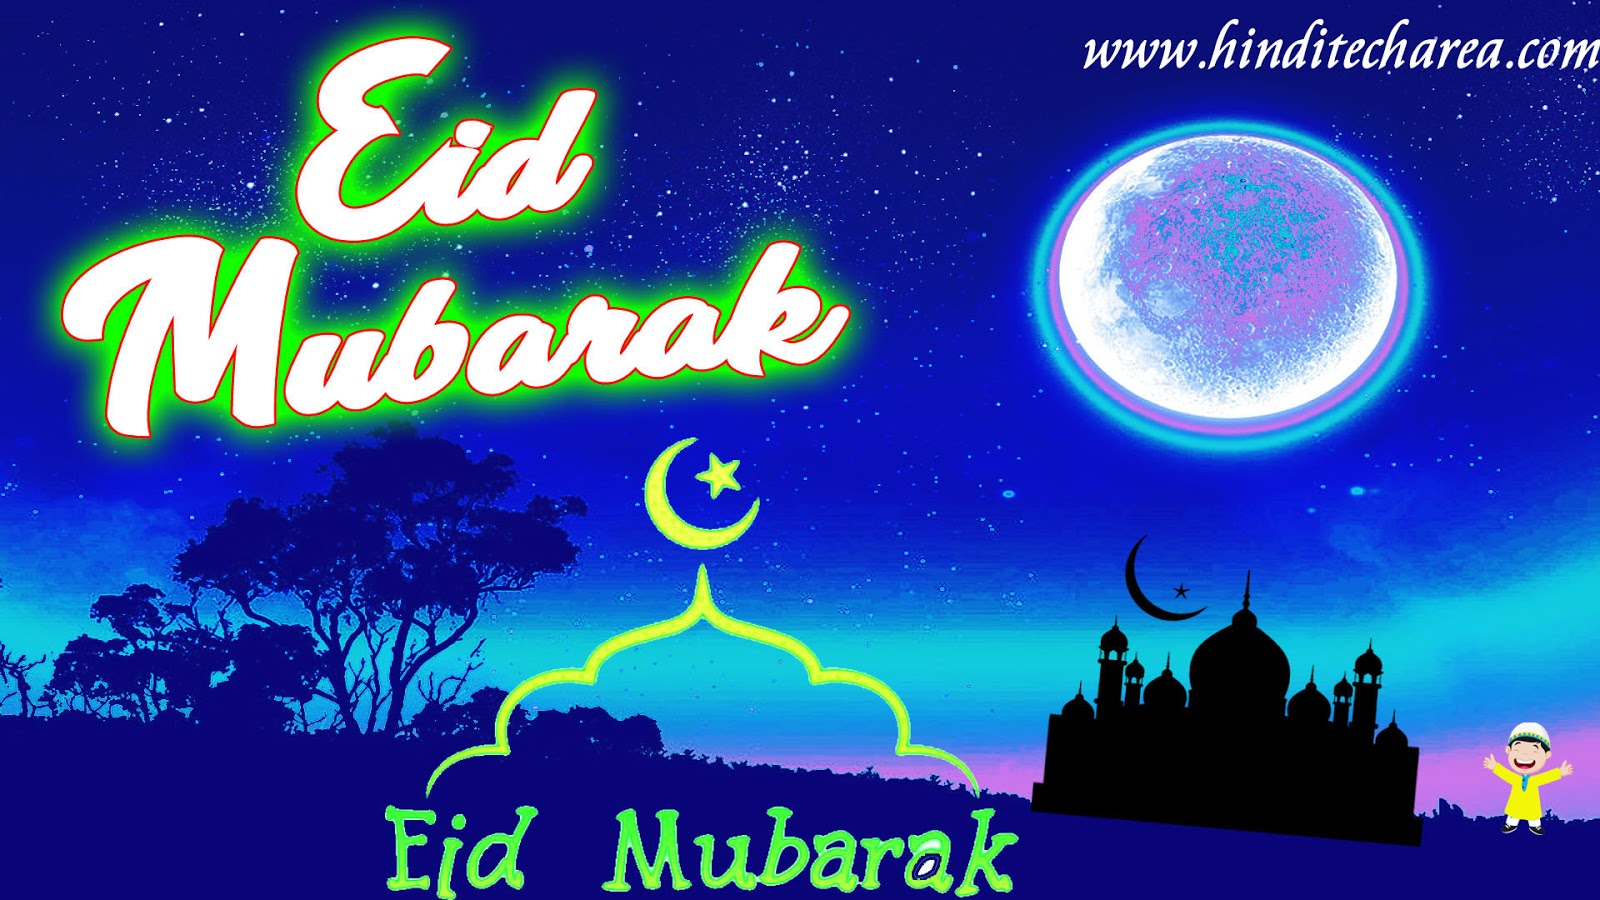 I Hope You Enjoy Each And Every Moment Of It May God Accept Our Fasts Prayers Eid Mubarak Allah Blessings Be With Today Tomorrow